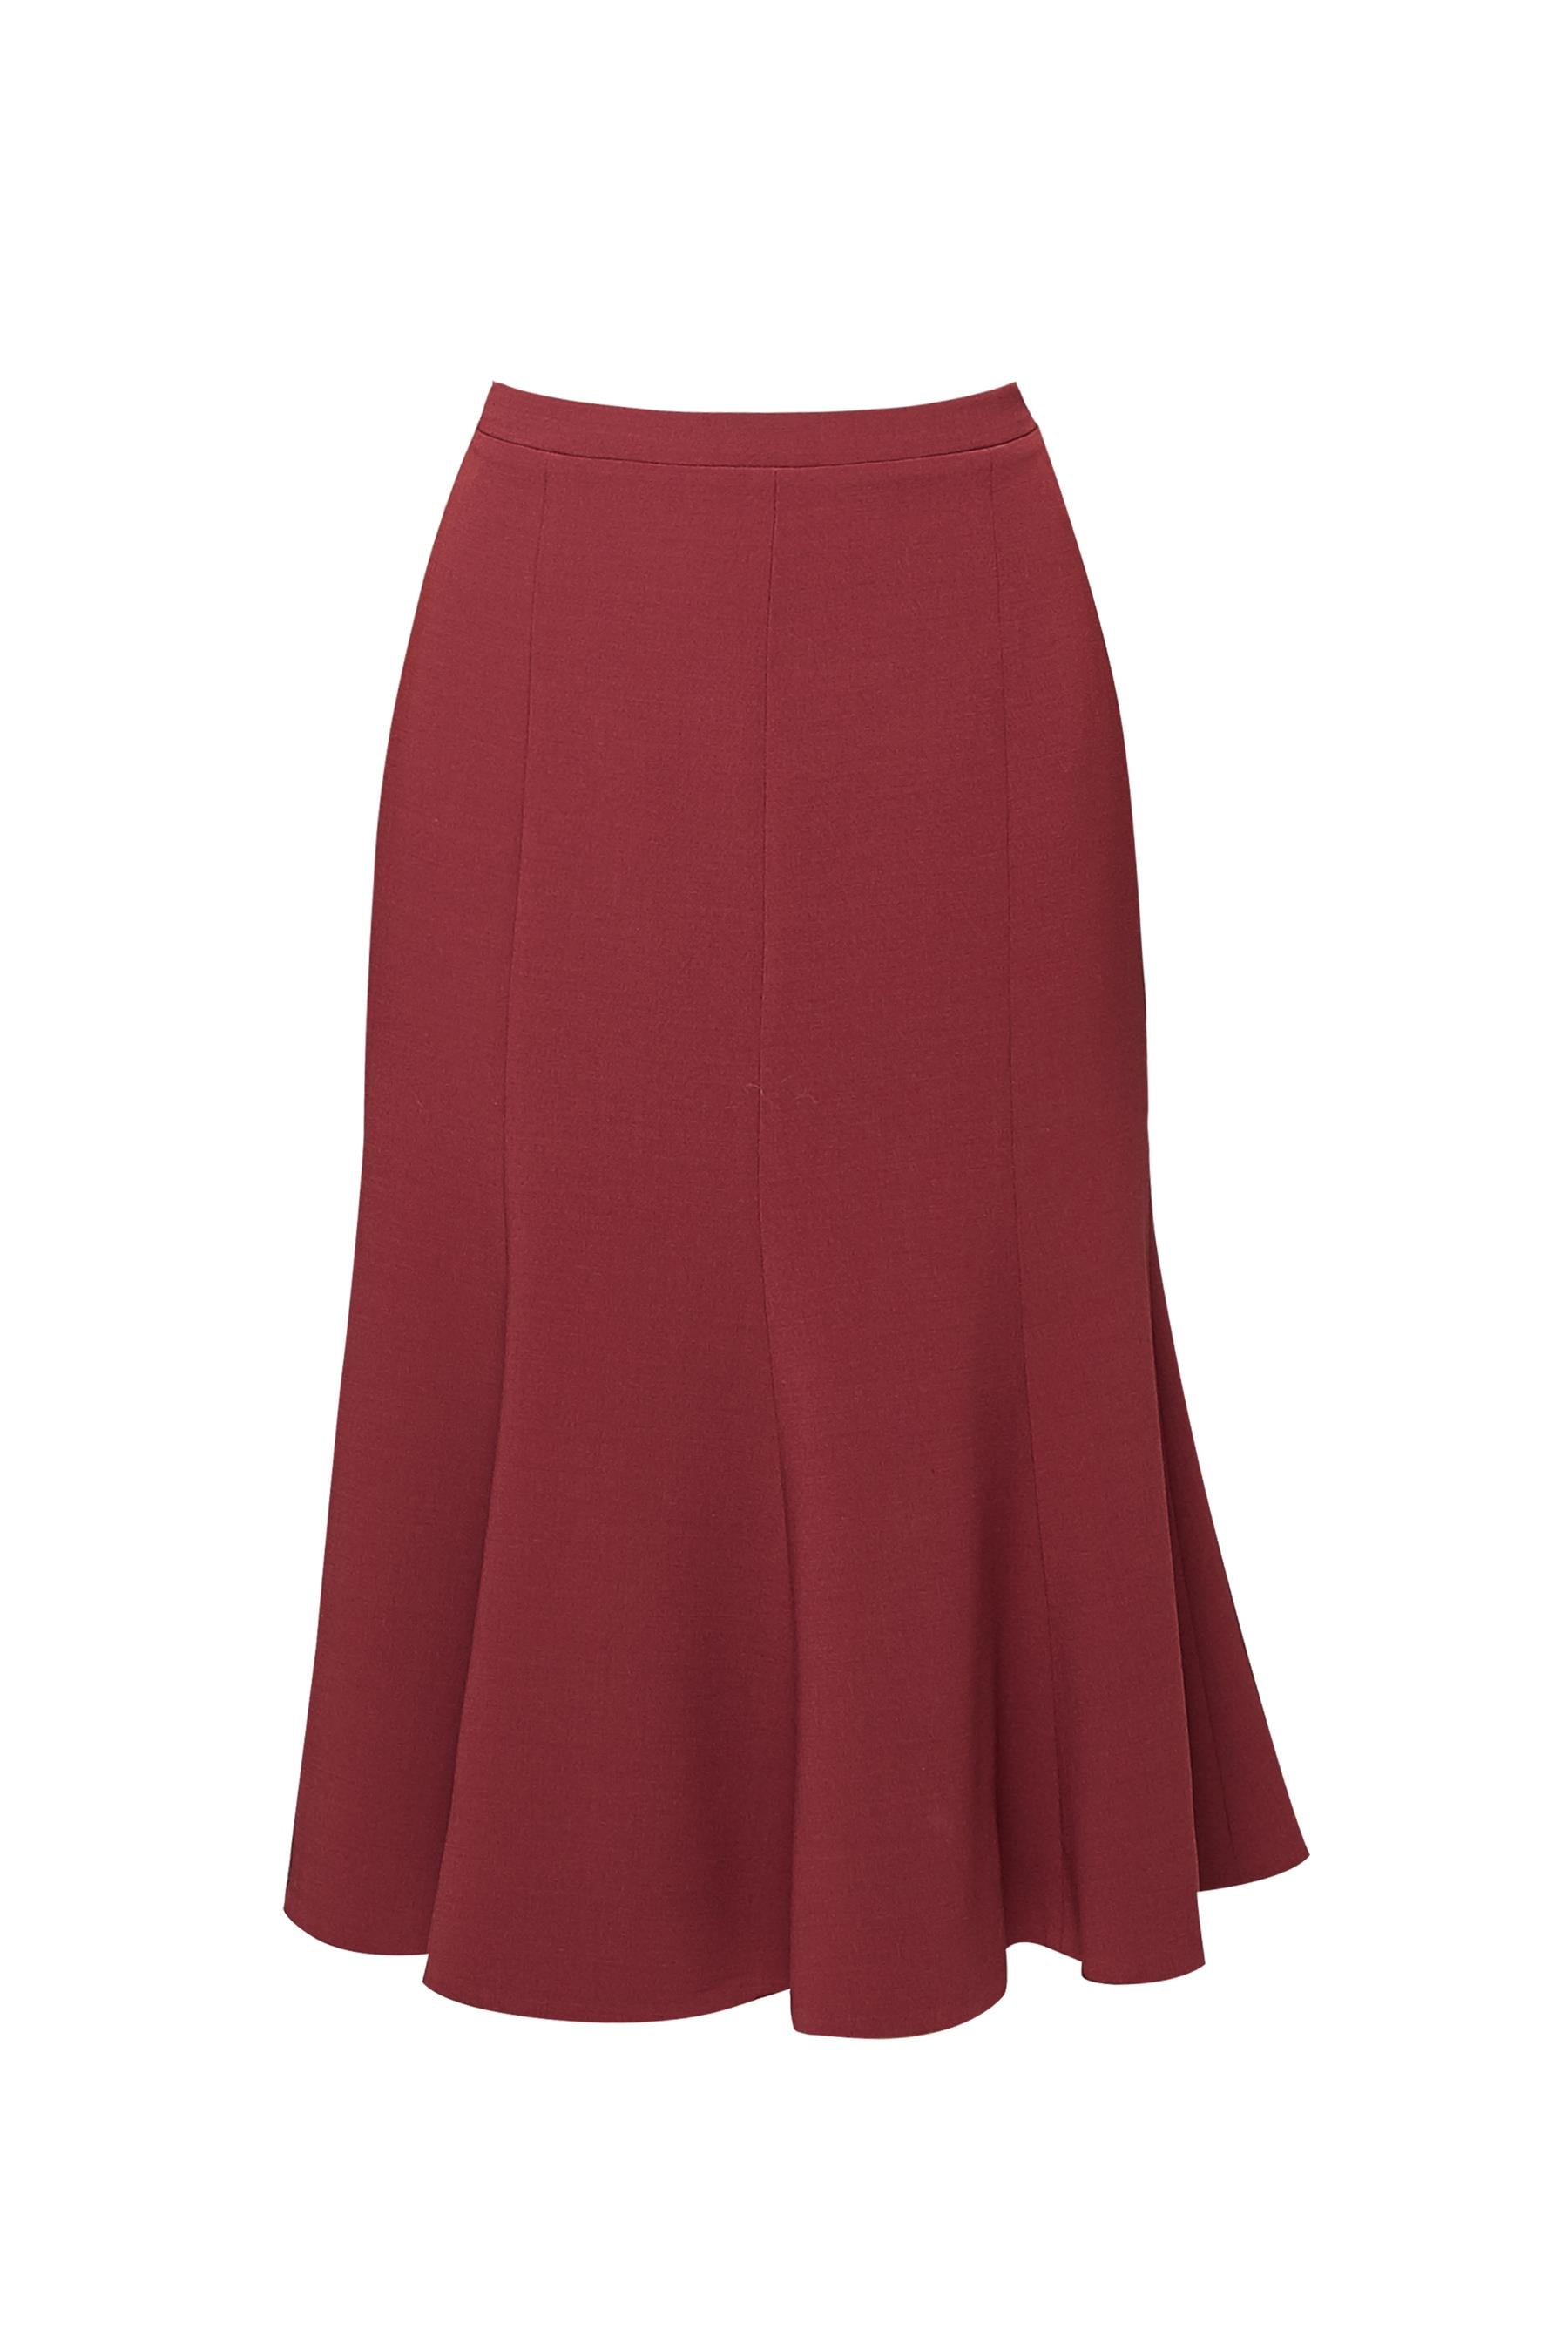 Wool midi skirt in berry